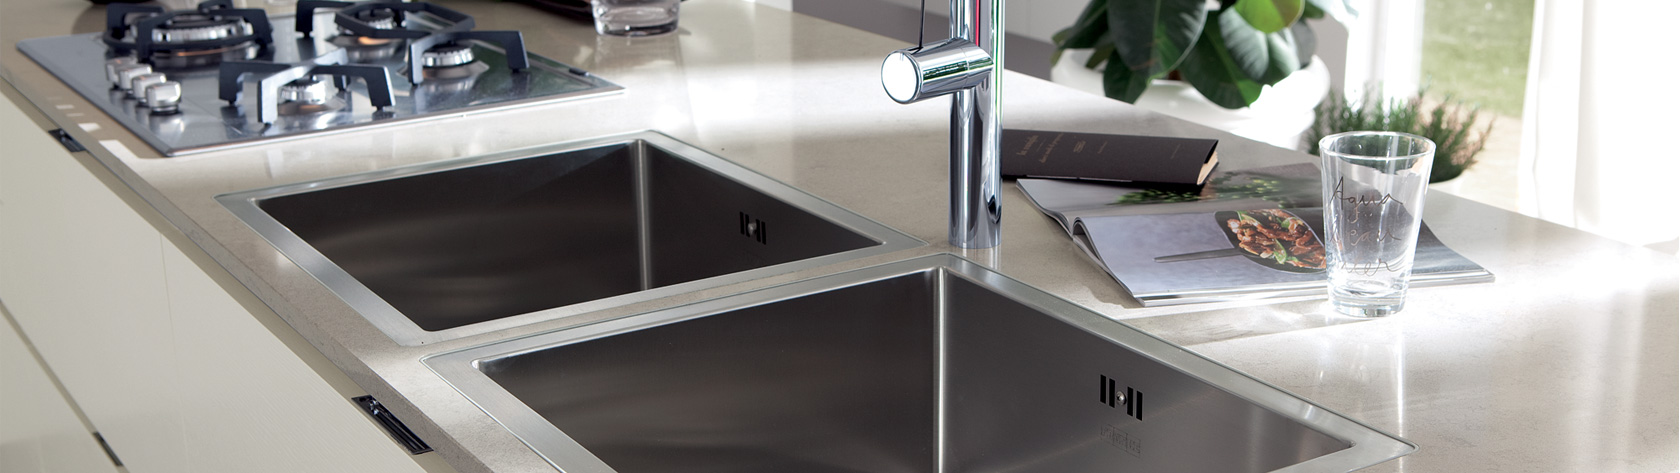 Materiali Per Cucine. Perfect Materiali Per Cucine With Materiali ...